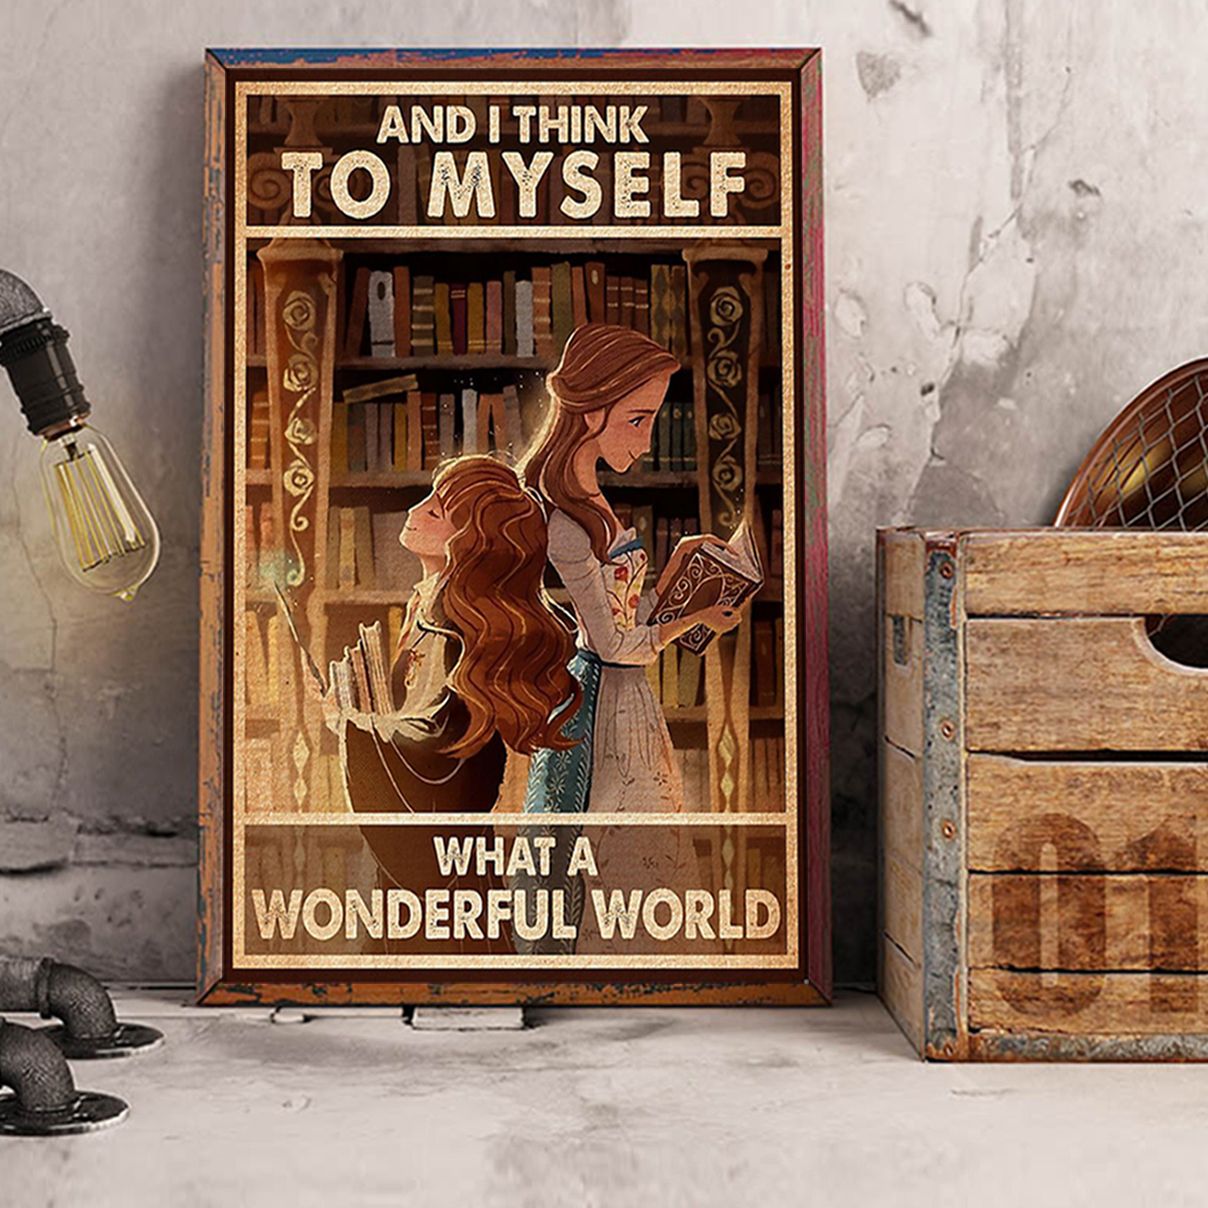 Library and I think to myself what a wonderful world poster A2